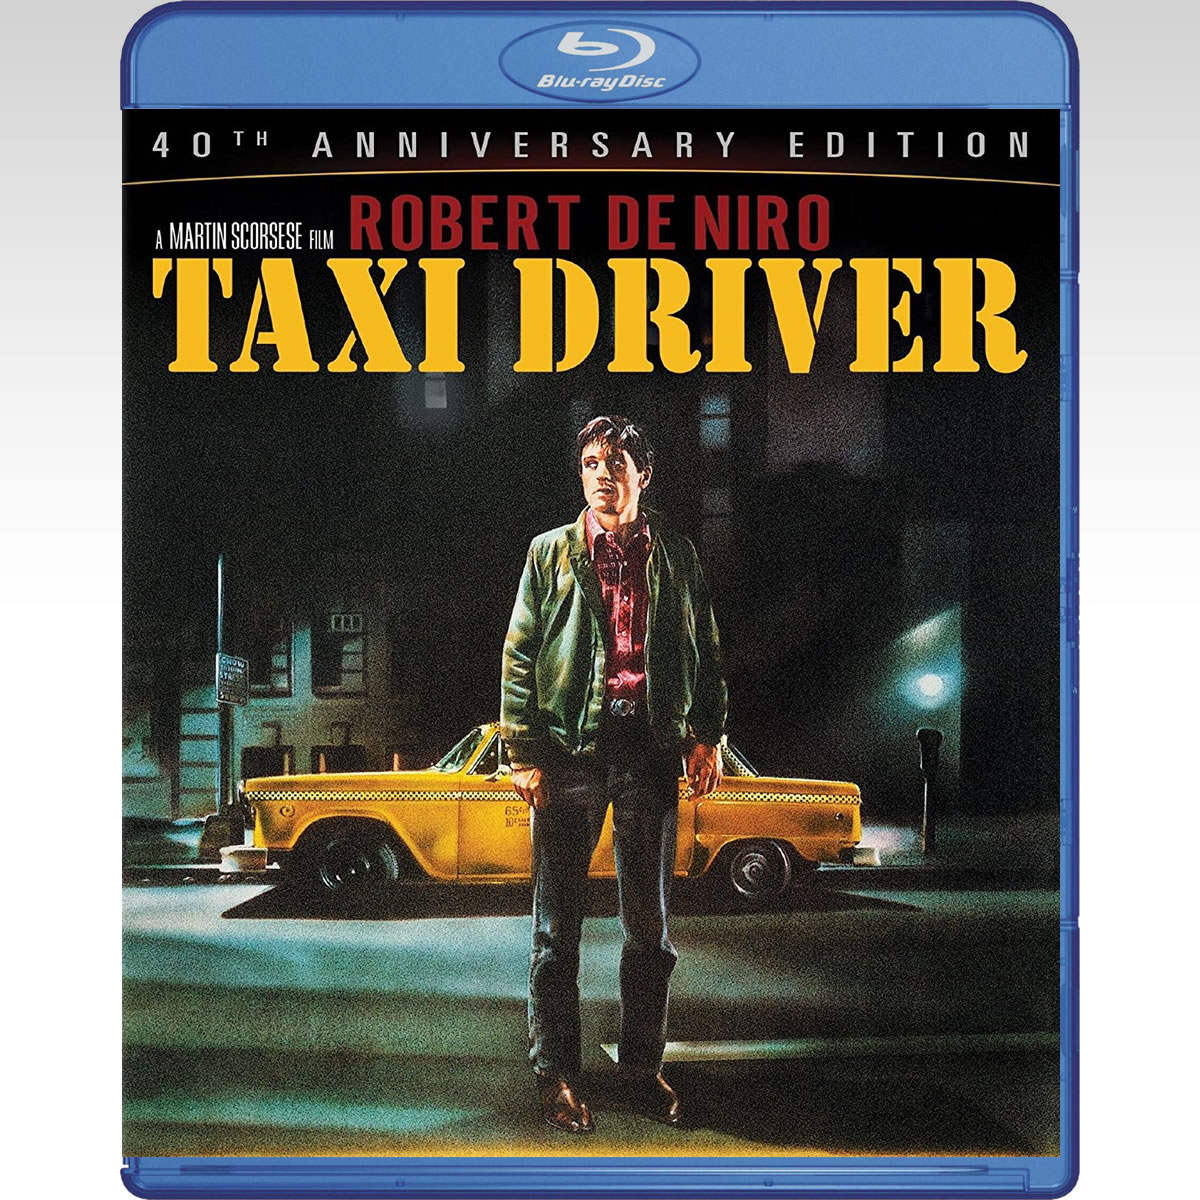 TAXI DRIVER - Ο ΤΑΞΙΤΖΗΣ 40th Anniversary Edition COMBO (BLU-RAY + DVD)